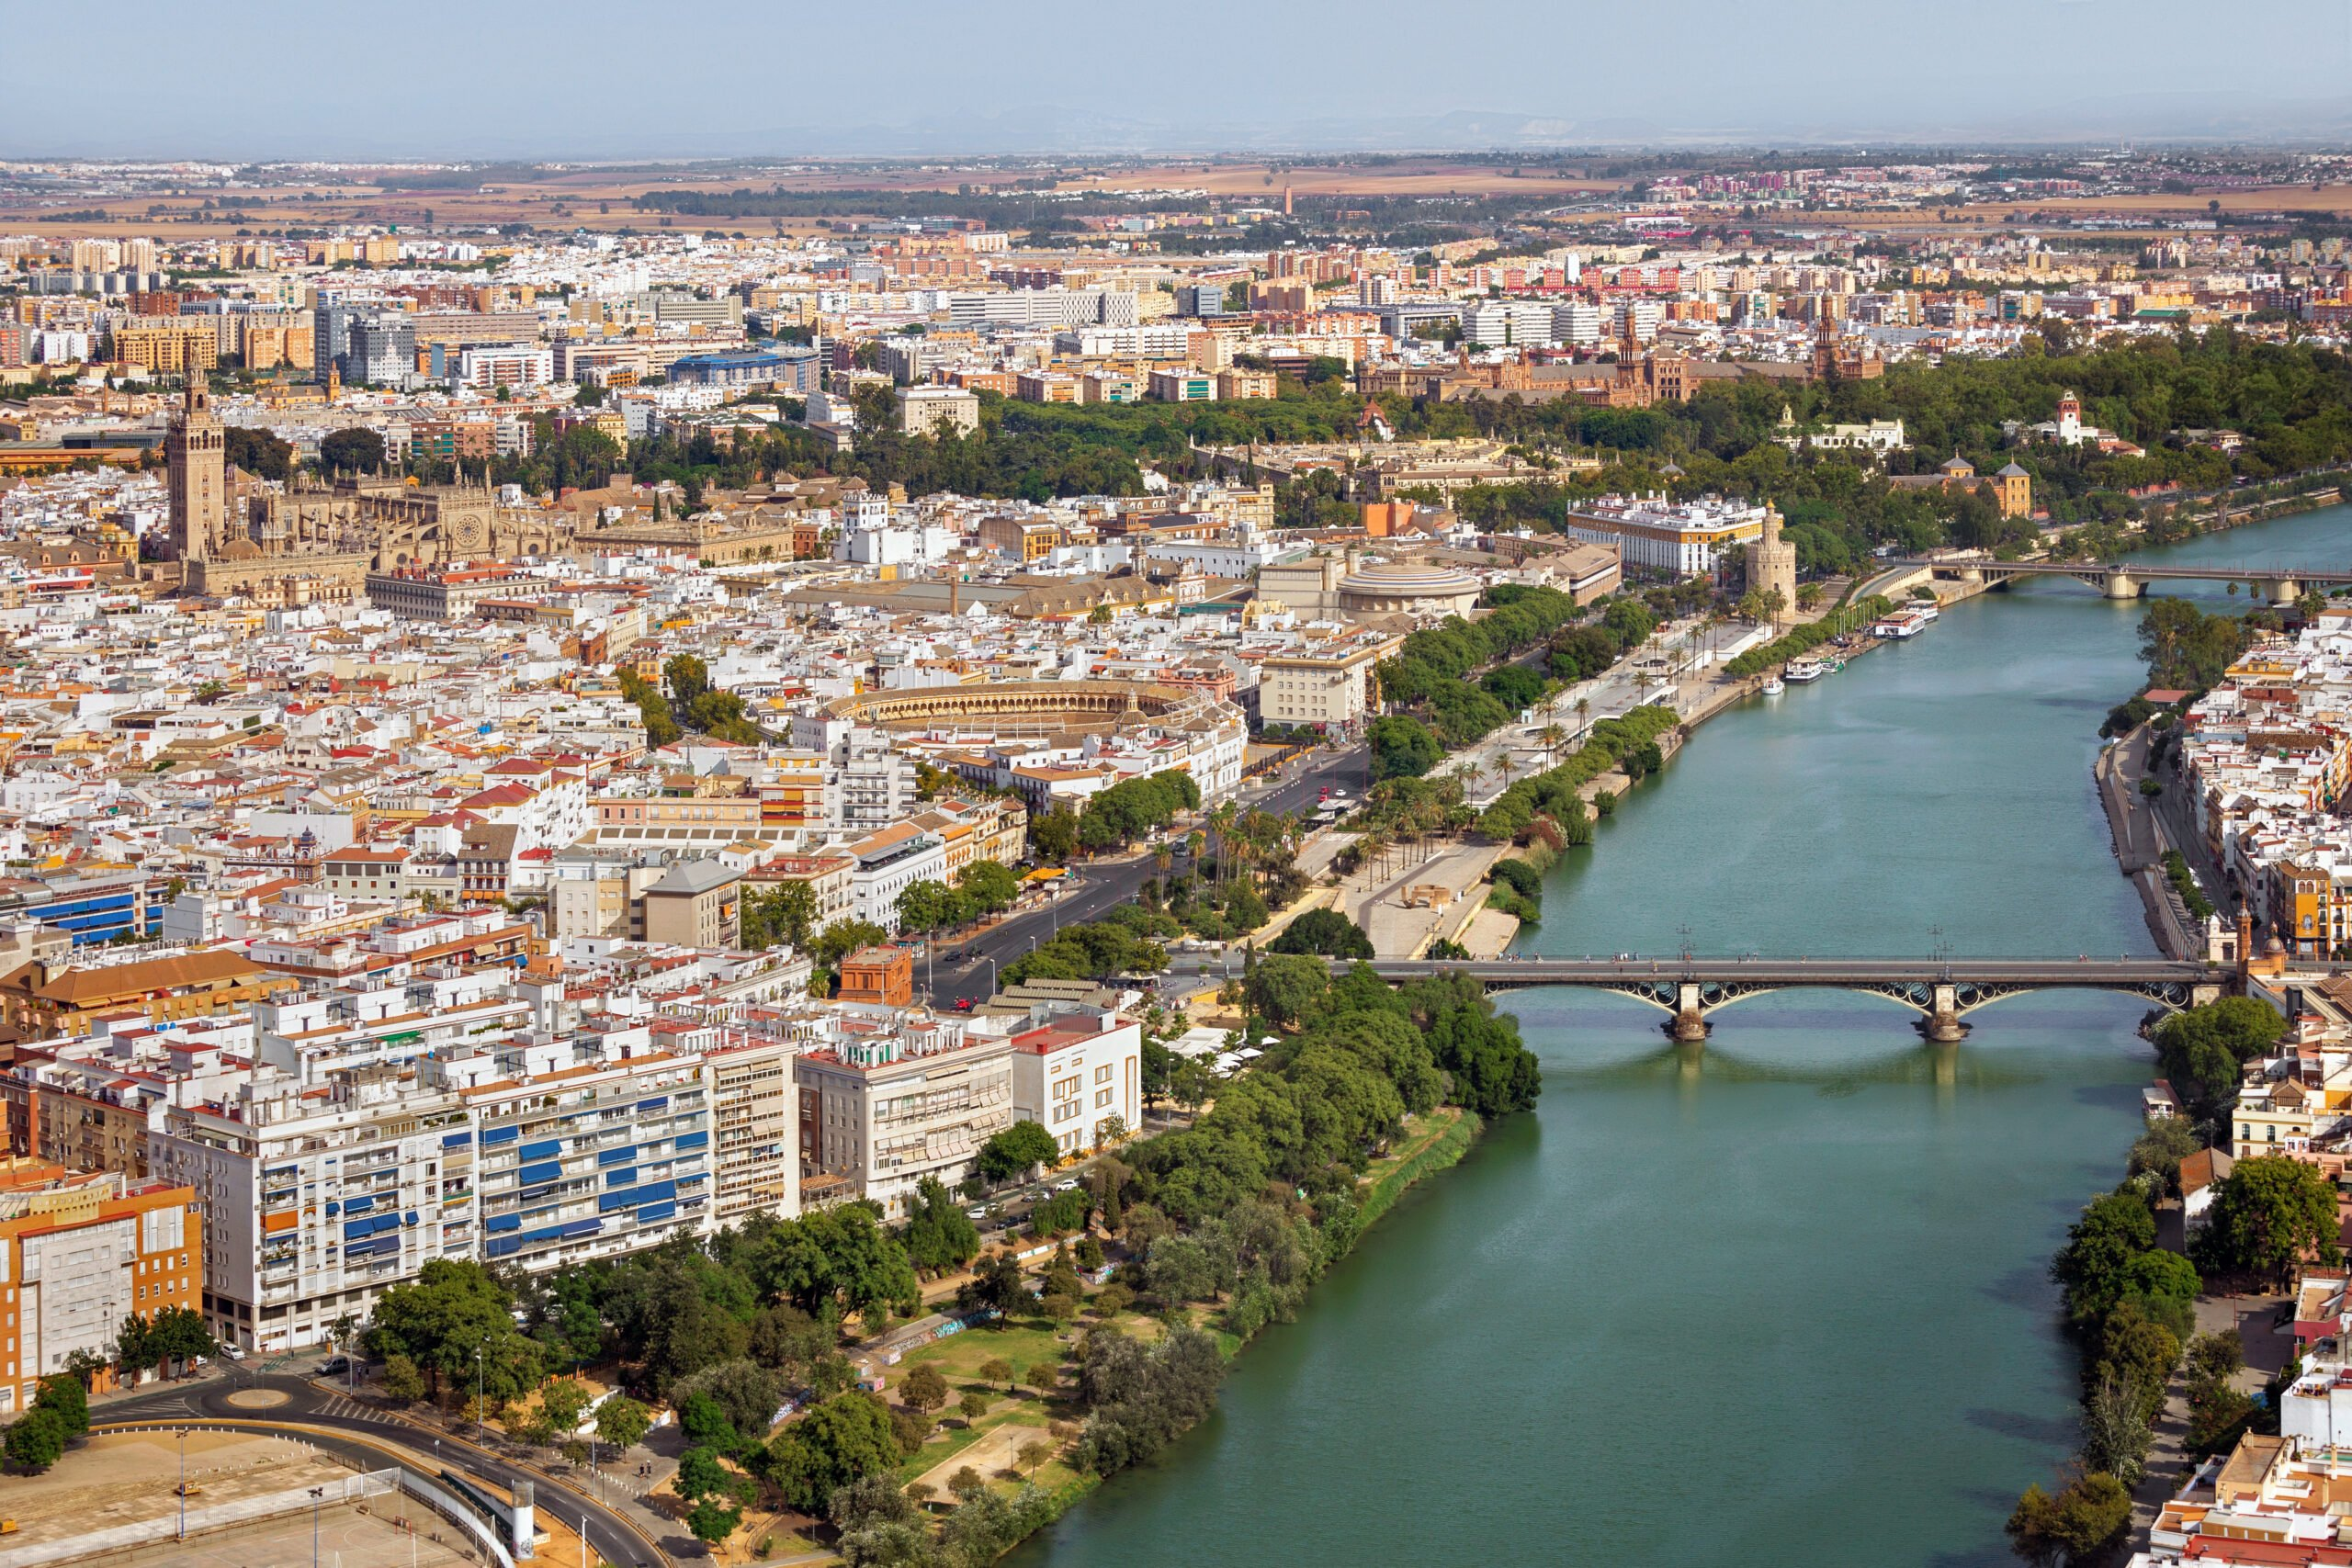 Discover The Riverbanks Of Seville On The Seville Rooftop Walking Tour